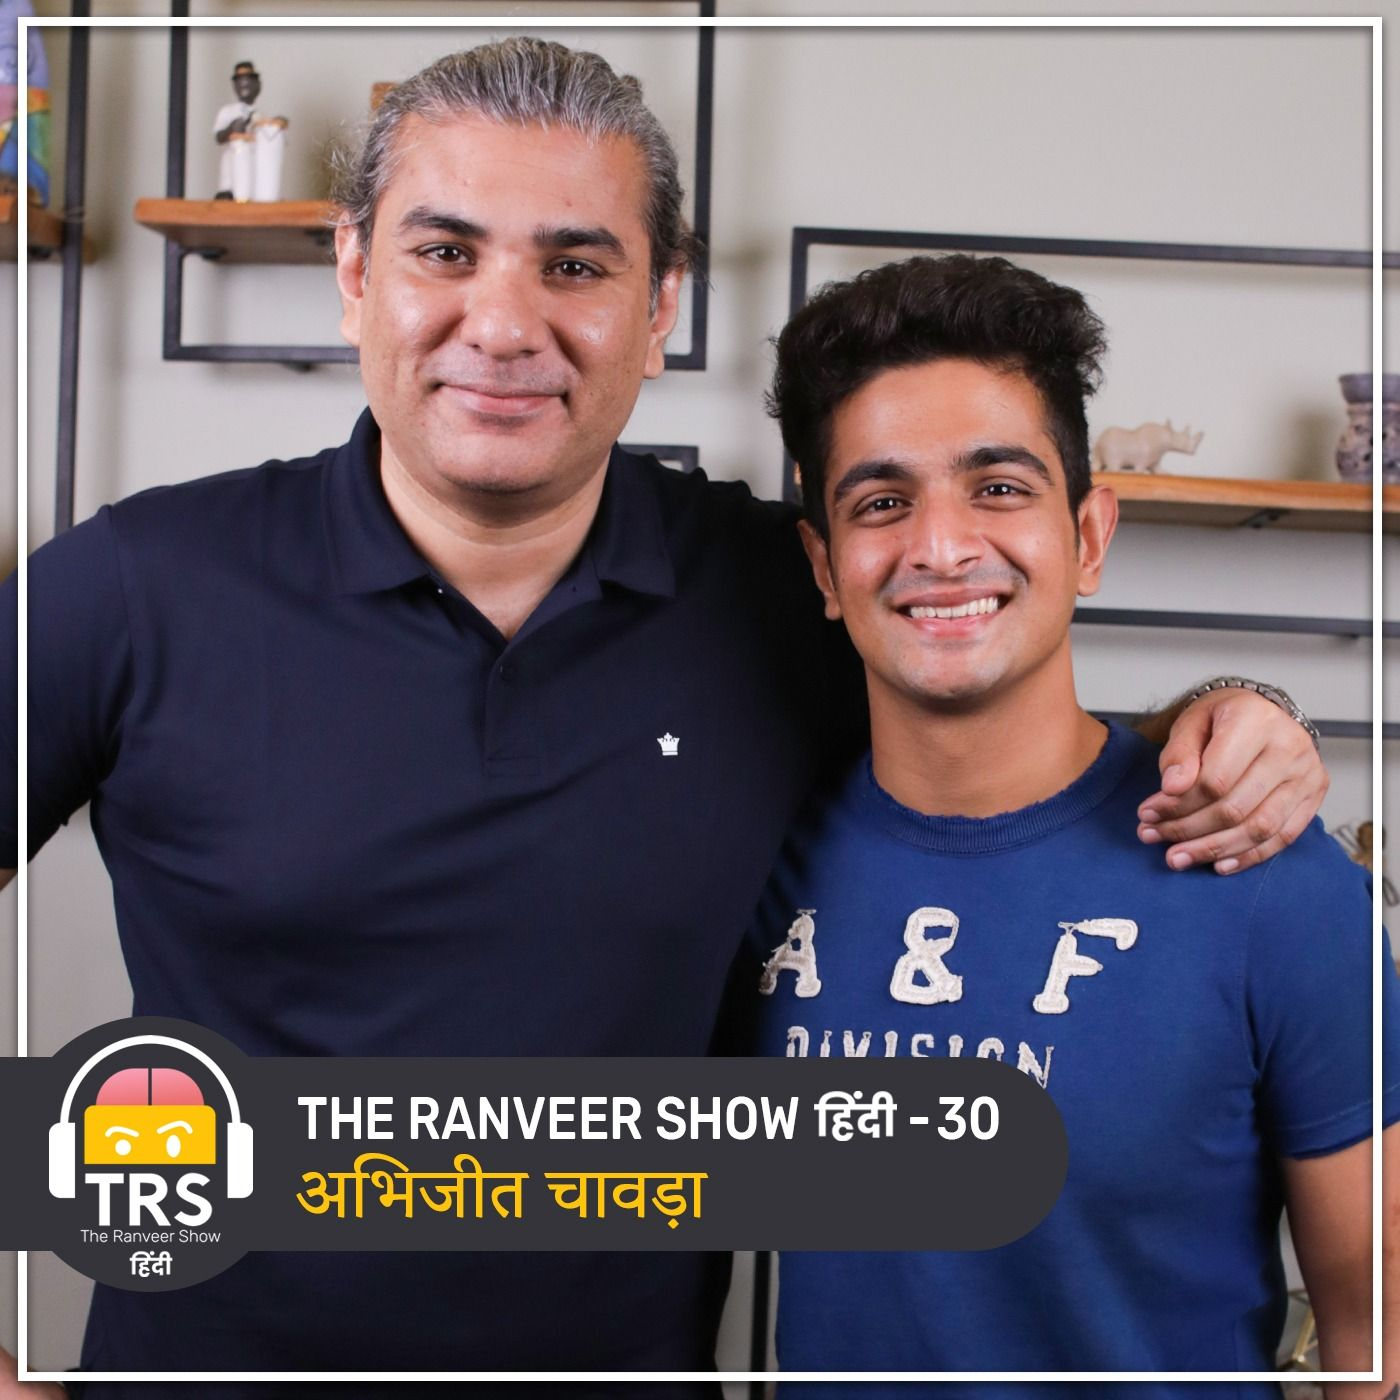 10 Amazing Things About Indian History You Never Knew ft. Abhijit Chavda | The Ranveer Show हिंदी 30